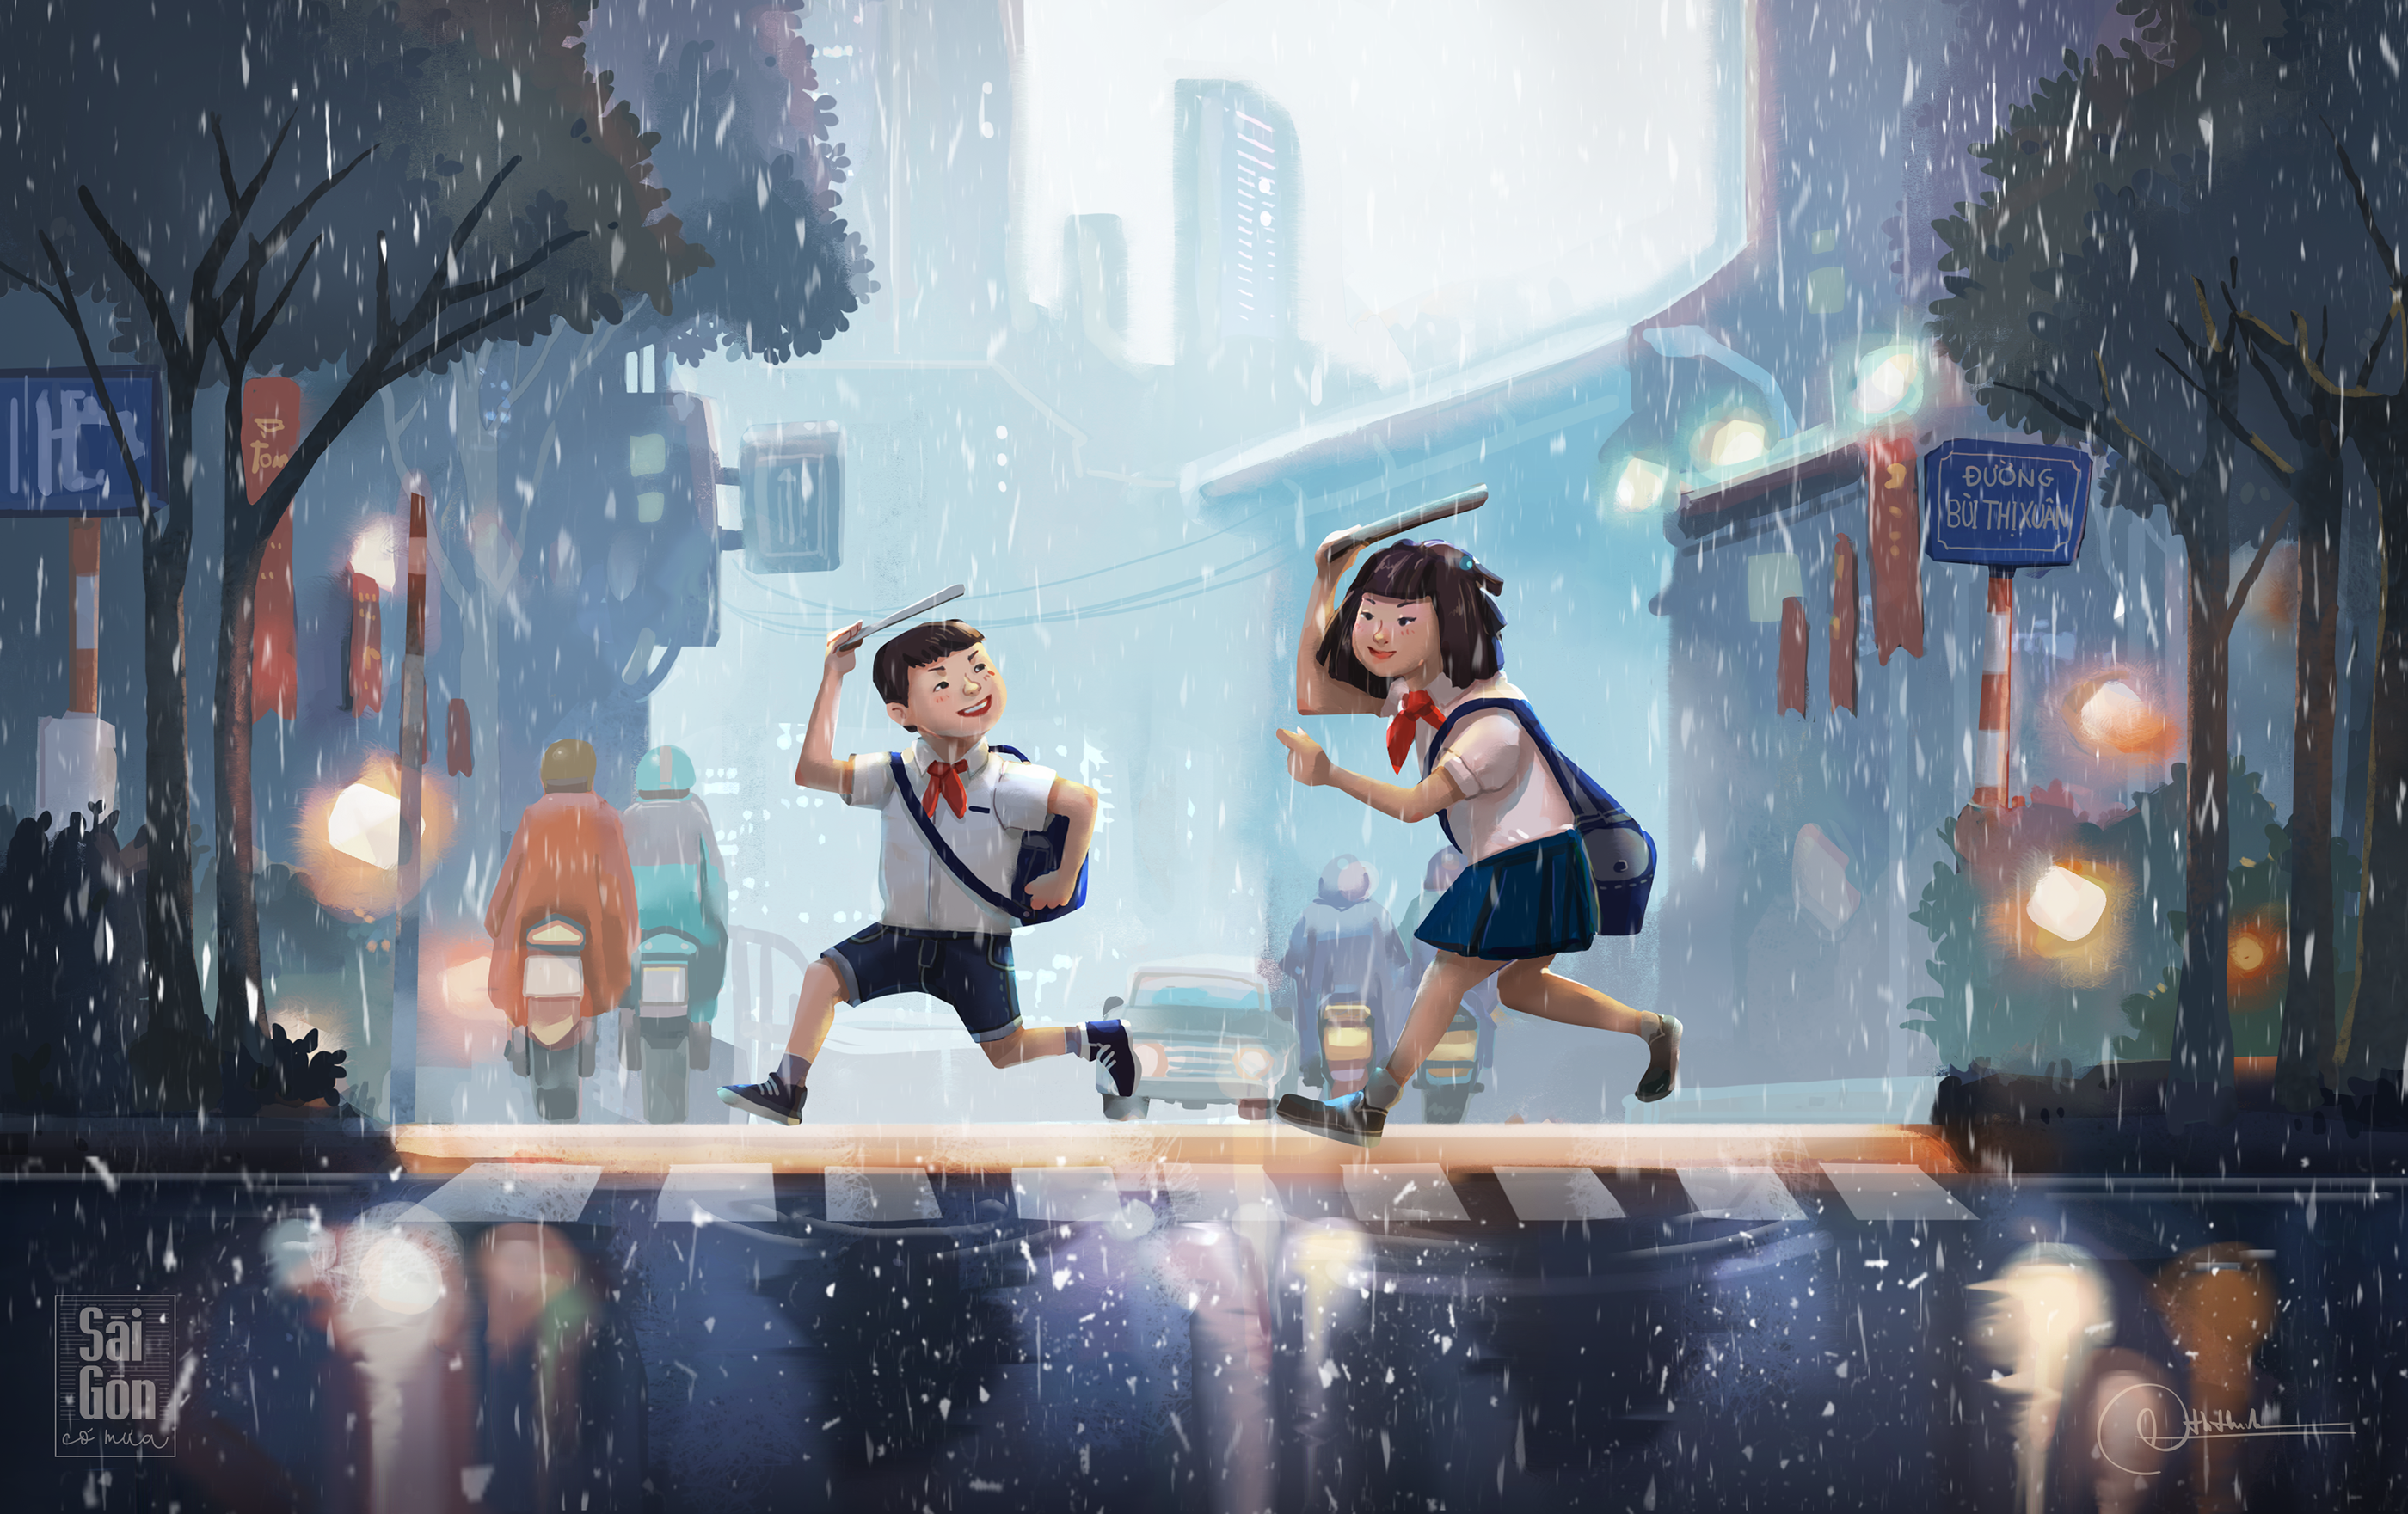 Saigon Rainy Days through Illustrations